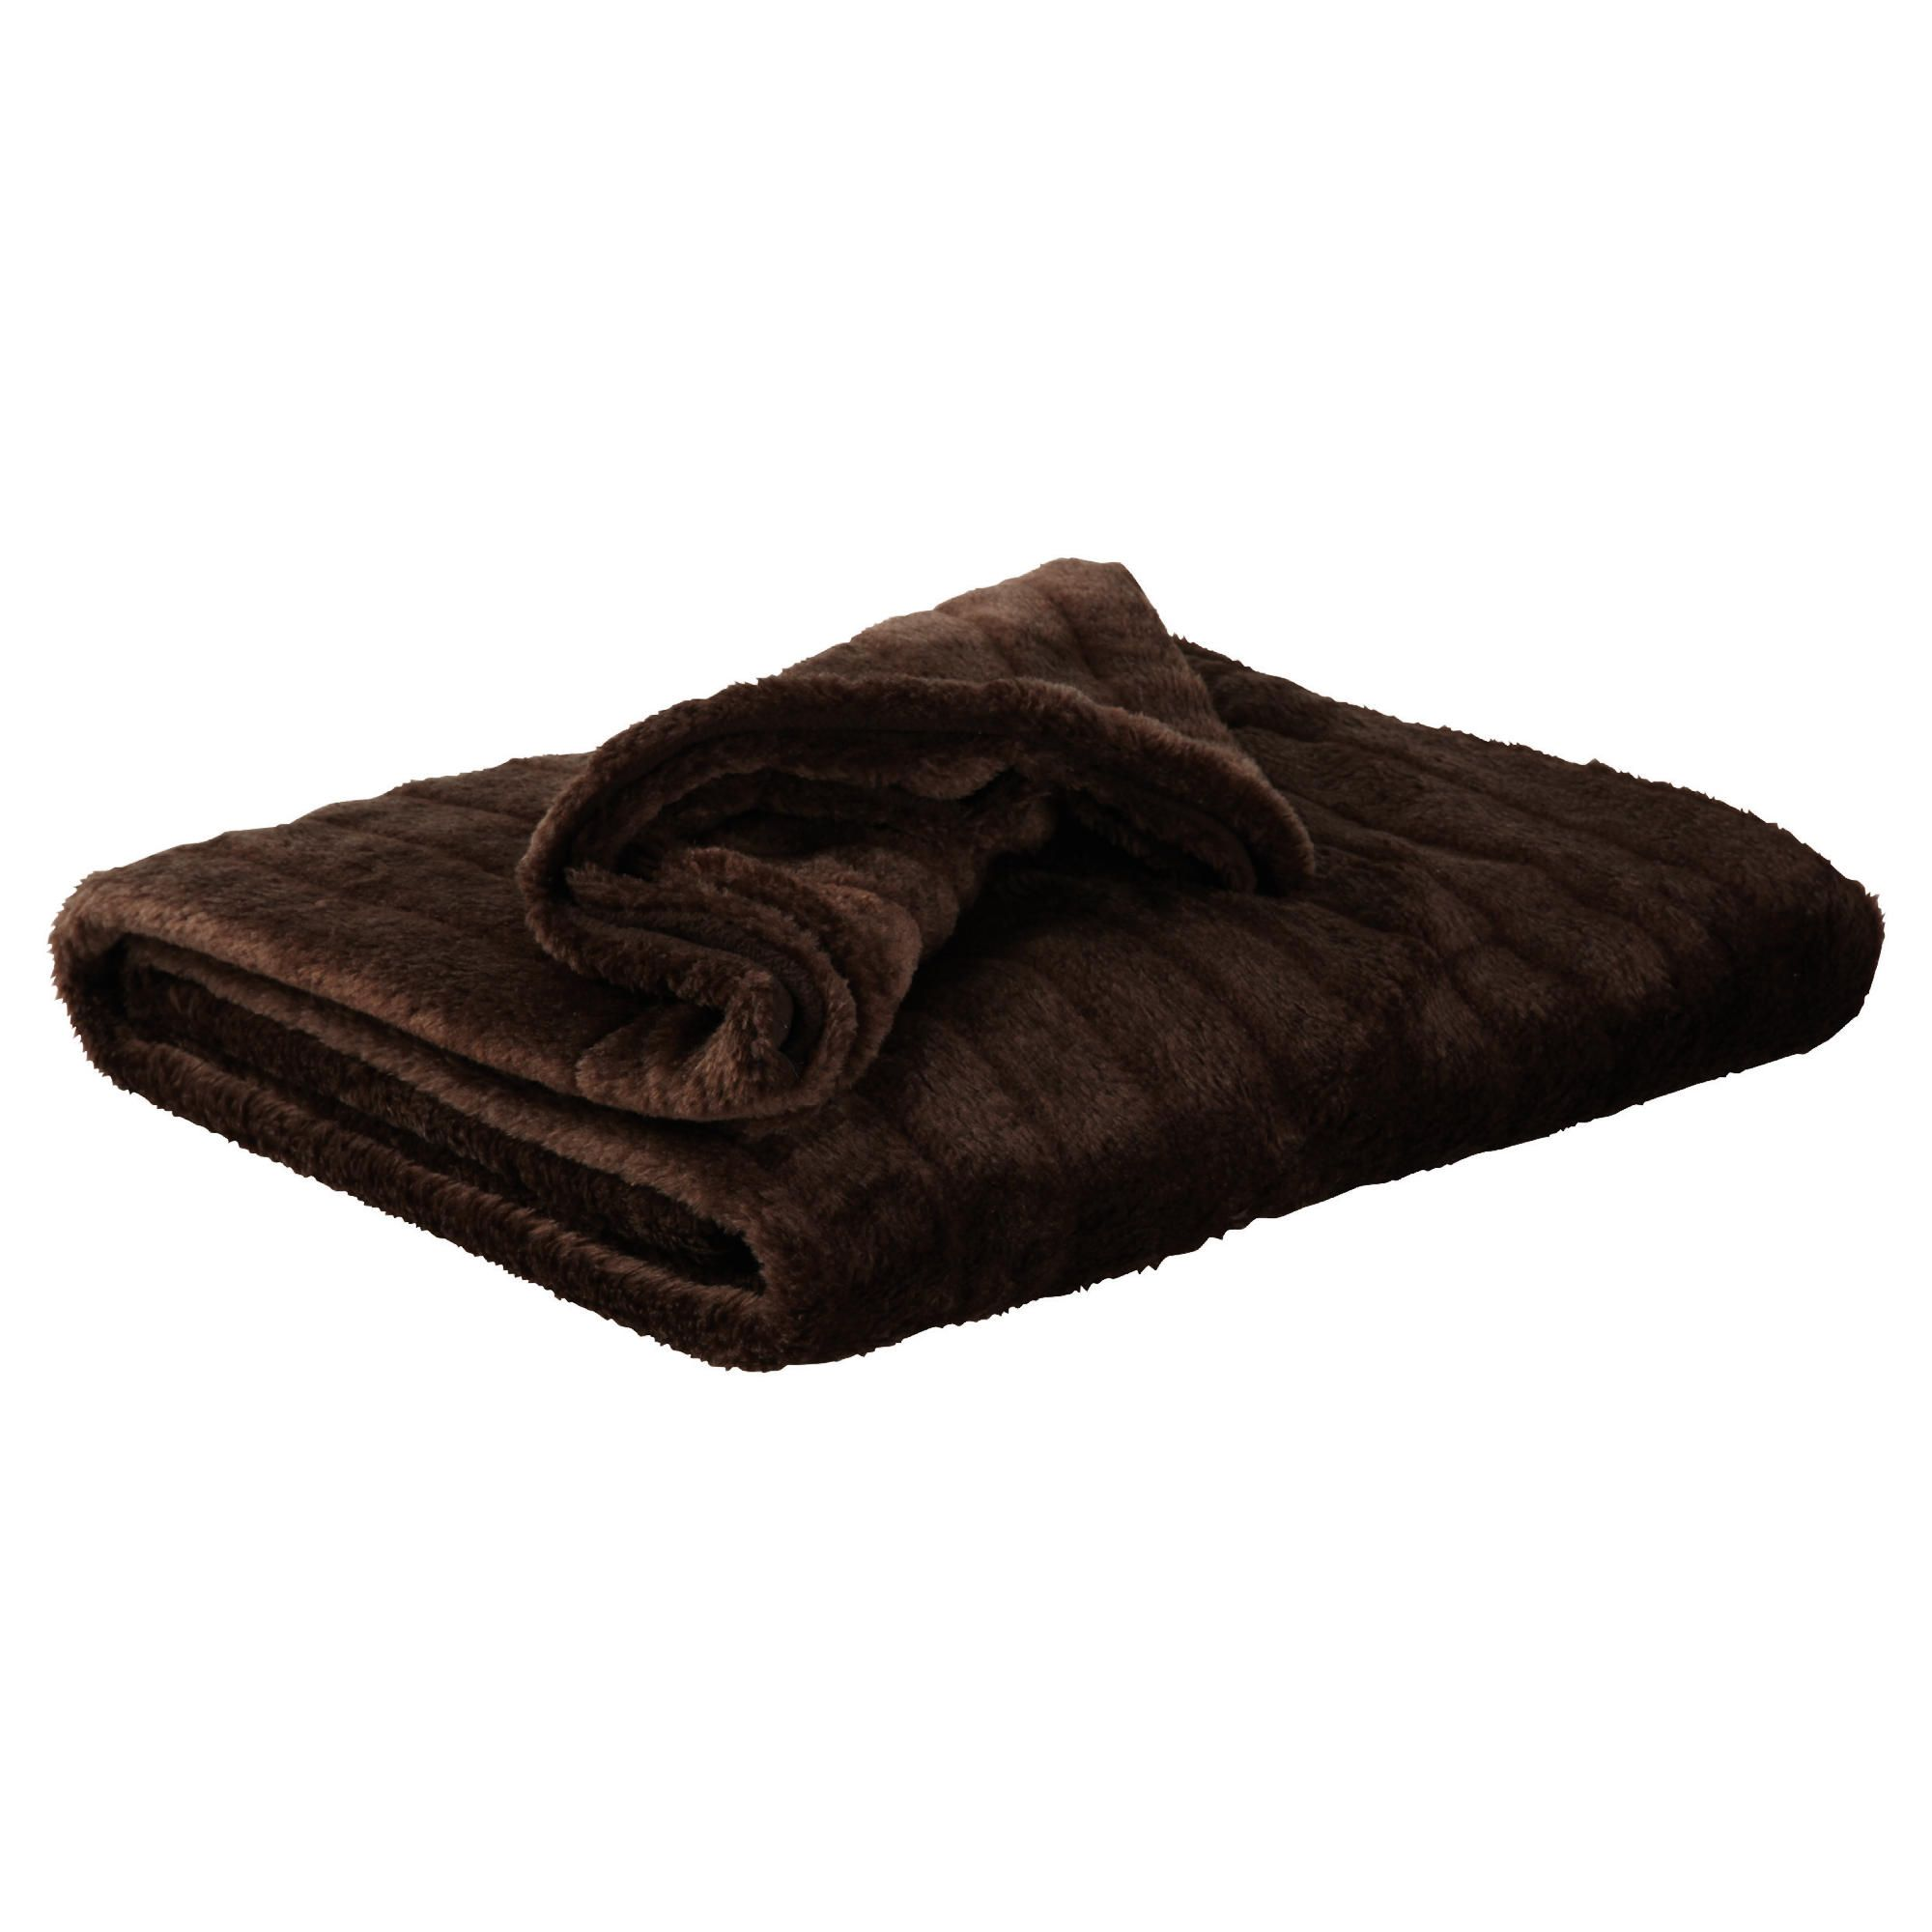 F&F home Ribbed Faux Fur Throw - Chocolate